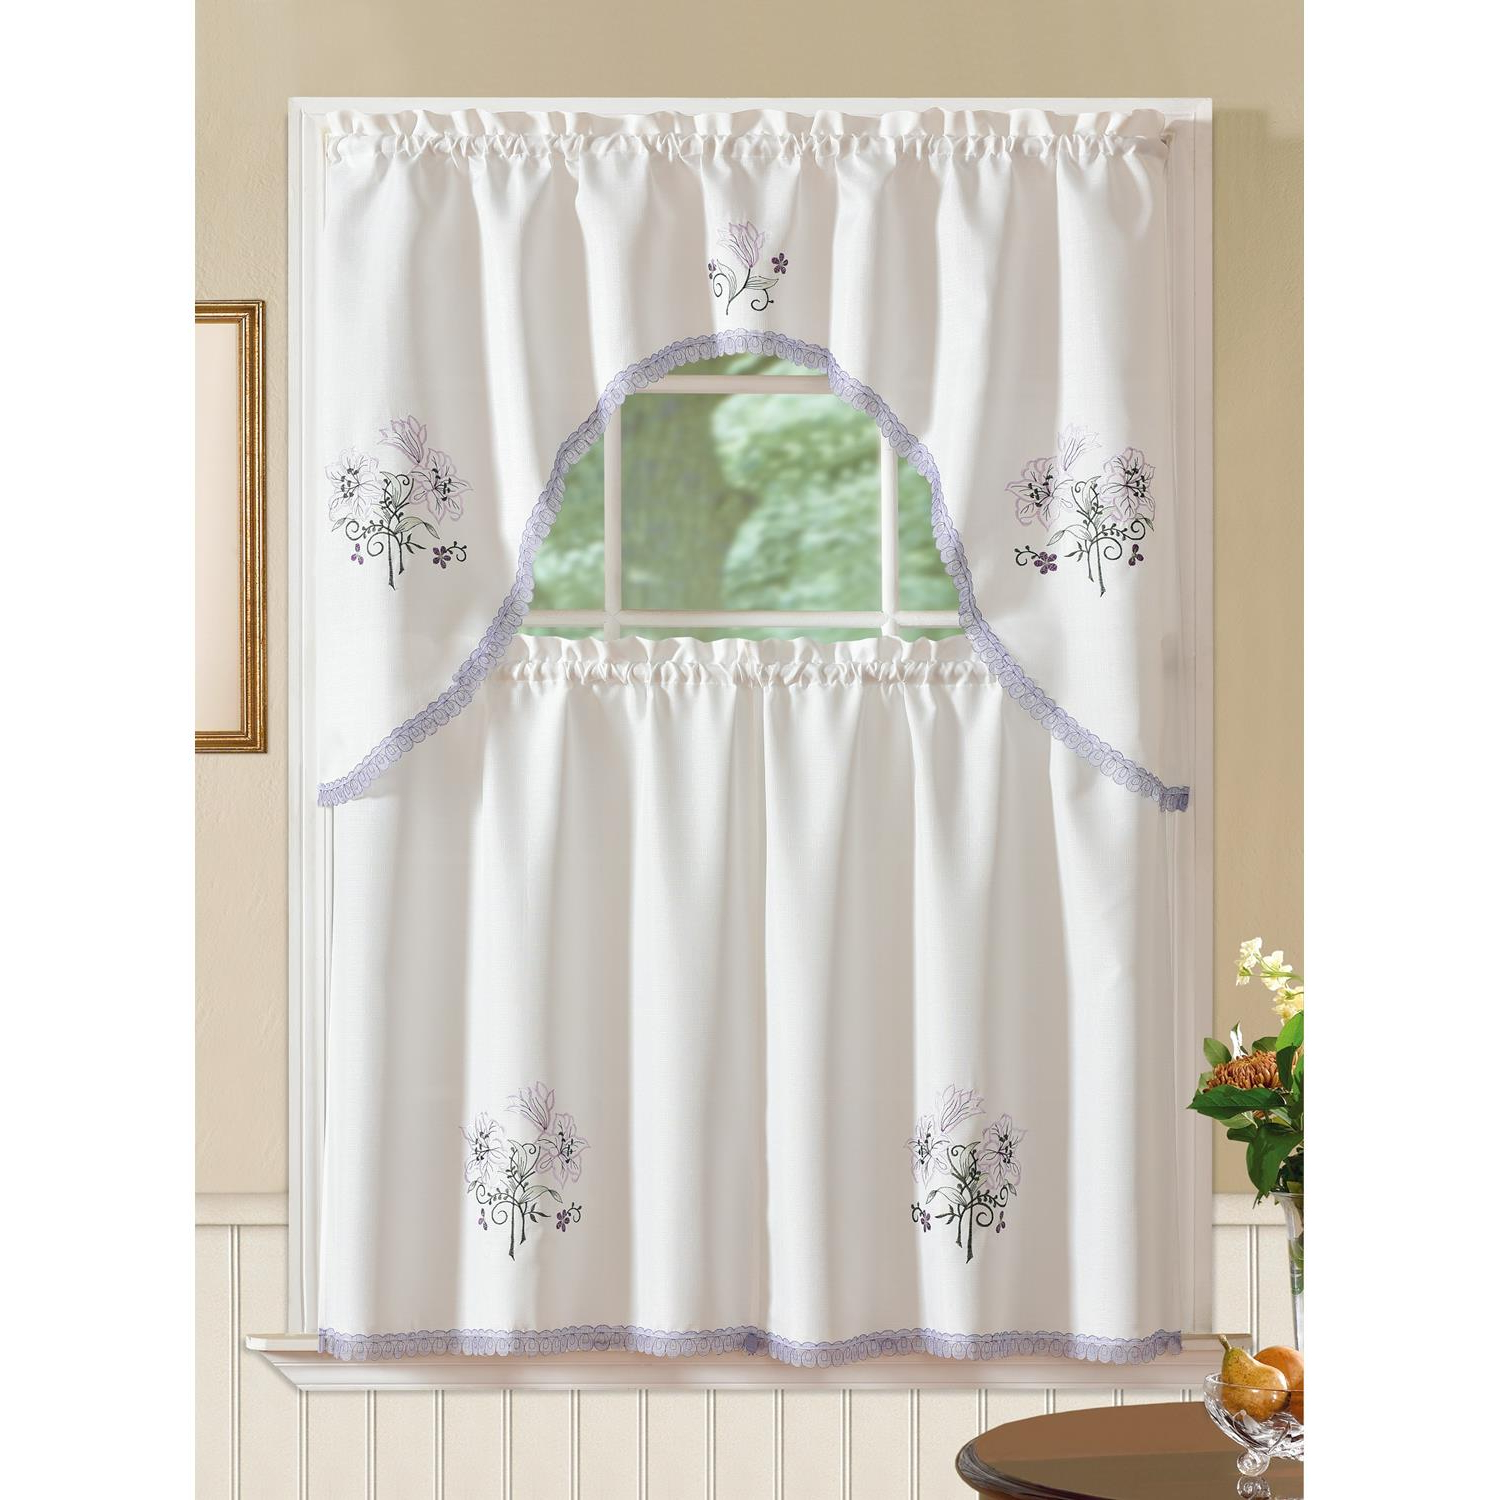 Famous Details About Regal Embroidered Lily Kitchen Curtain Set Inside Cotton Blend Ivy Floral Tier Curtain And Swag Sets (Gallery 15 of 20)